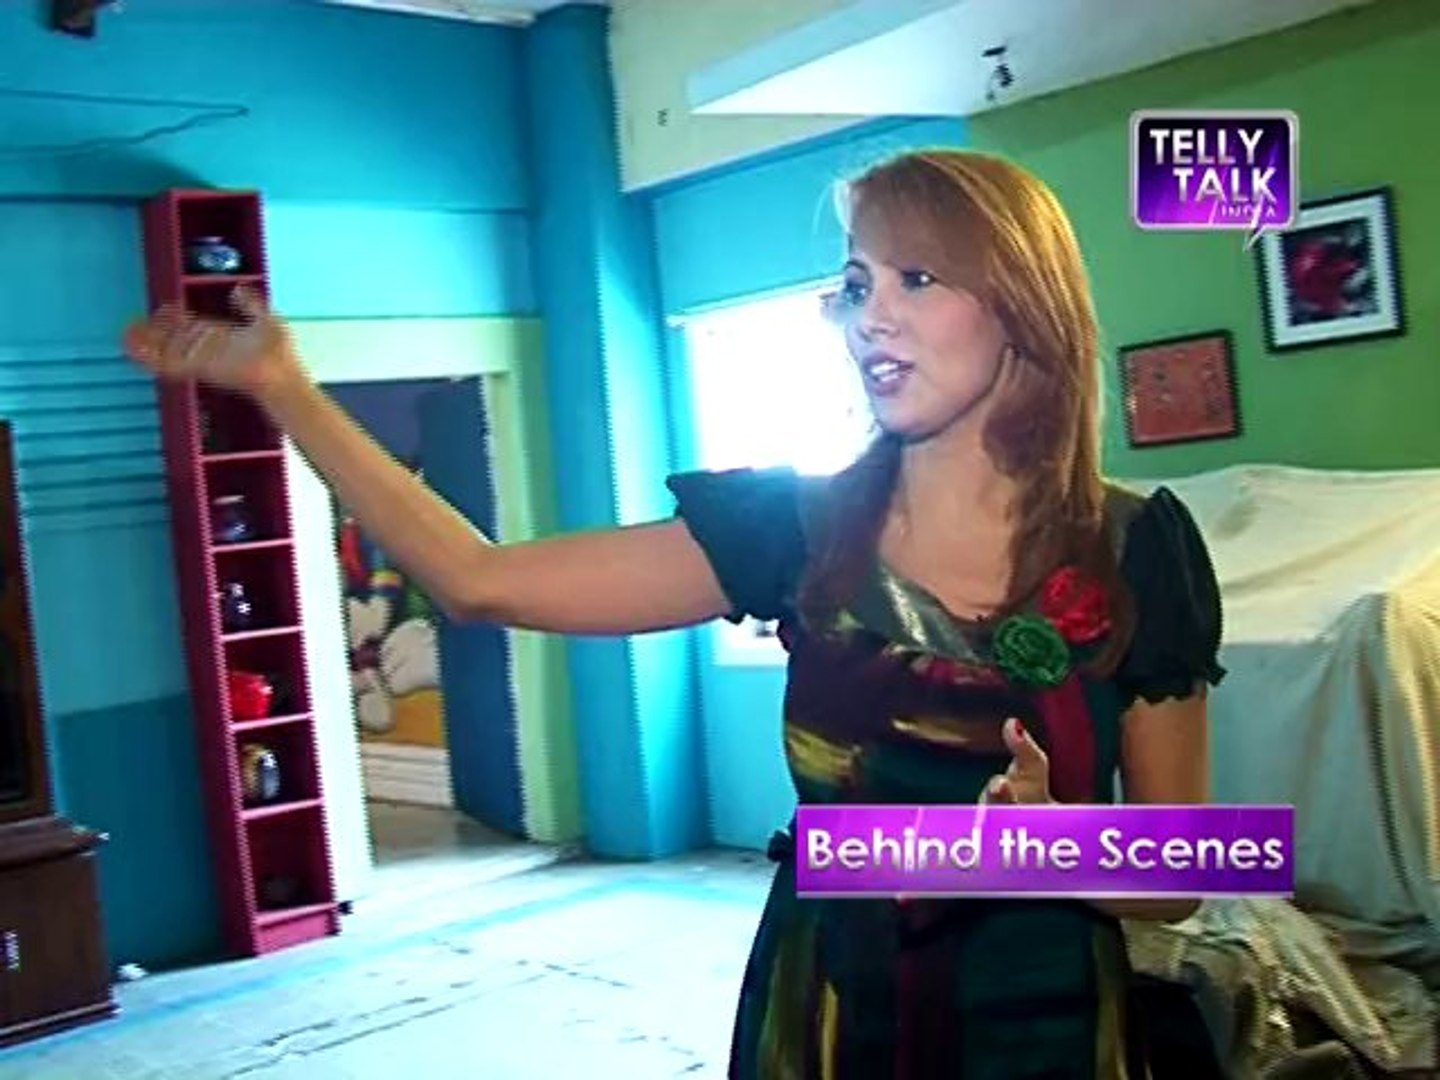 HOT Babita ji in Jethalal's bedroom | Sneak peak of the set of Taarak Mehta  Ka Ooltah Chashma